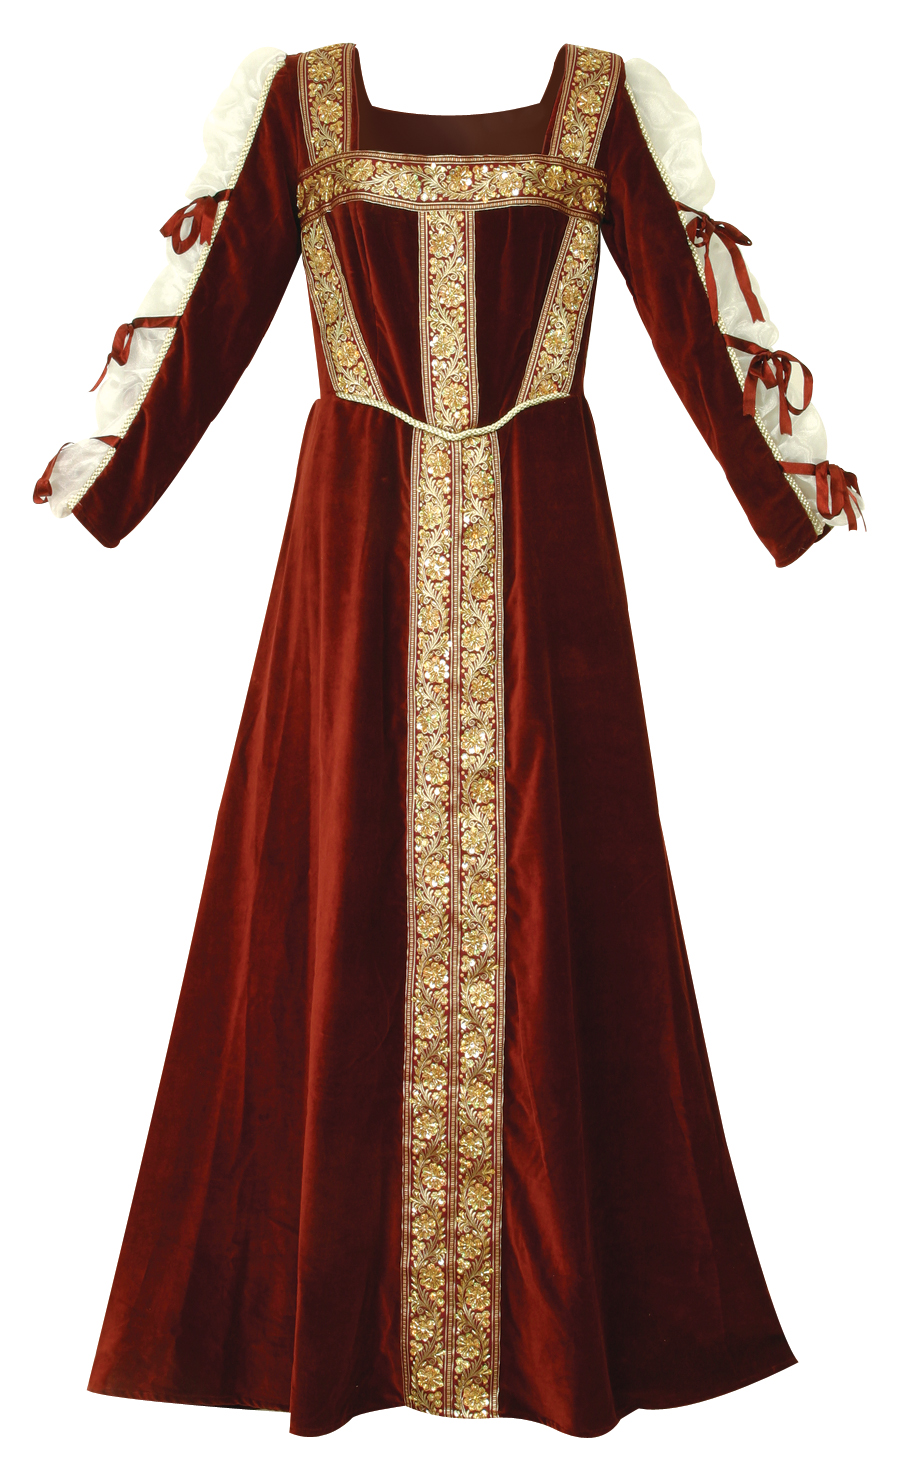 Lady Jane Gown - rich burgundy velvet with hand-beaded gold trim.  Sleeves  have sheer netting inserts and burgundy bows. Sizes to XL.